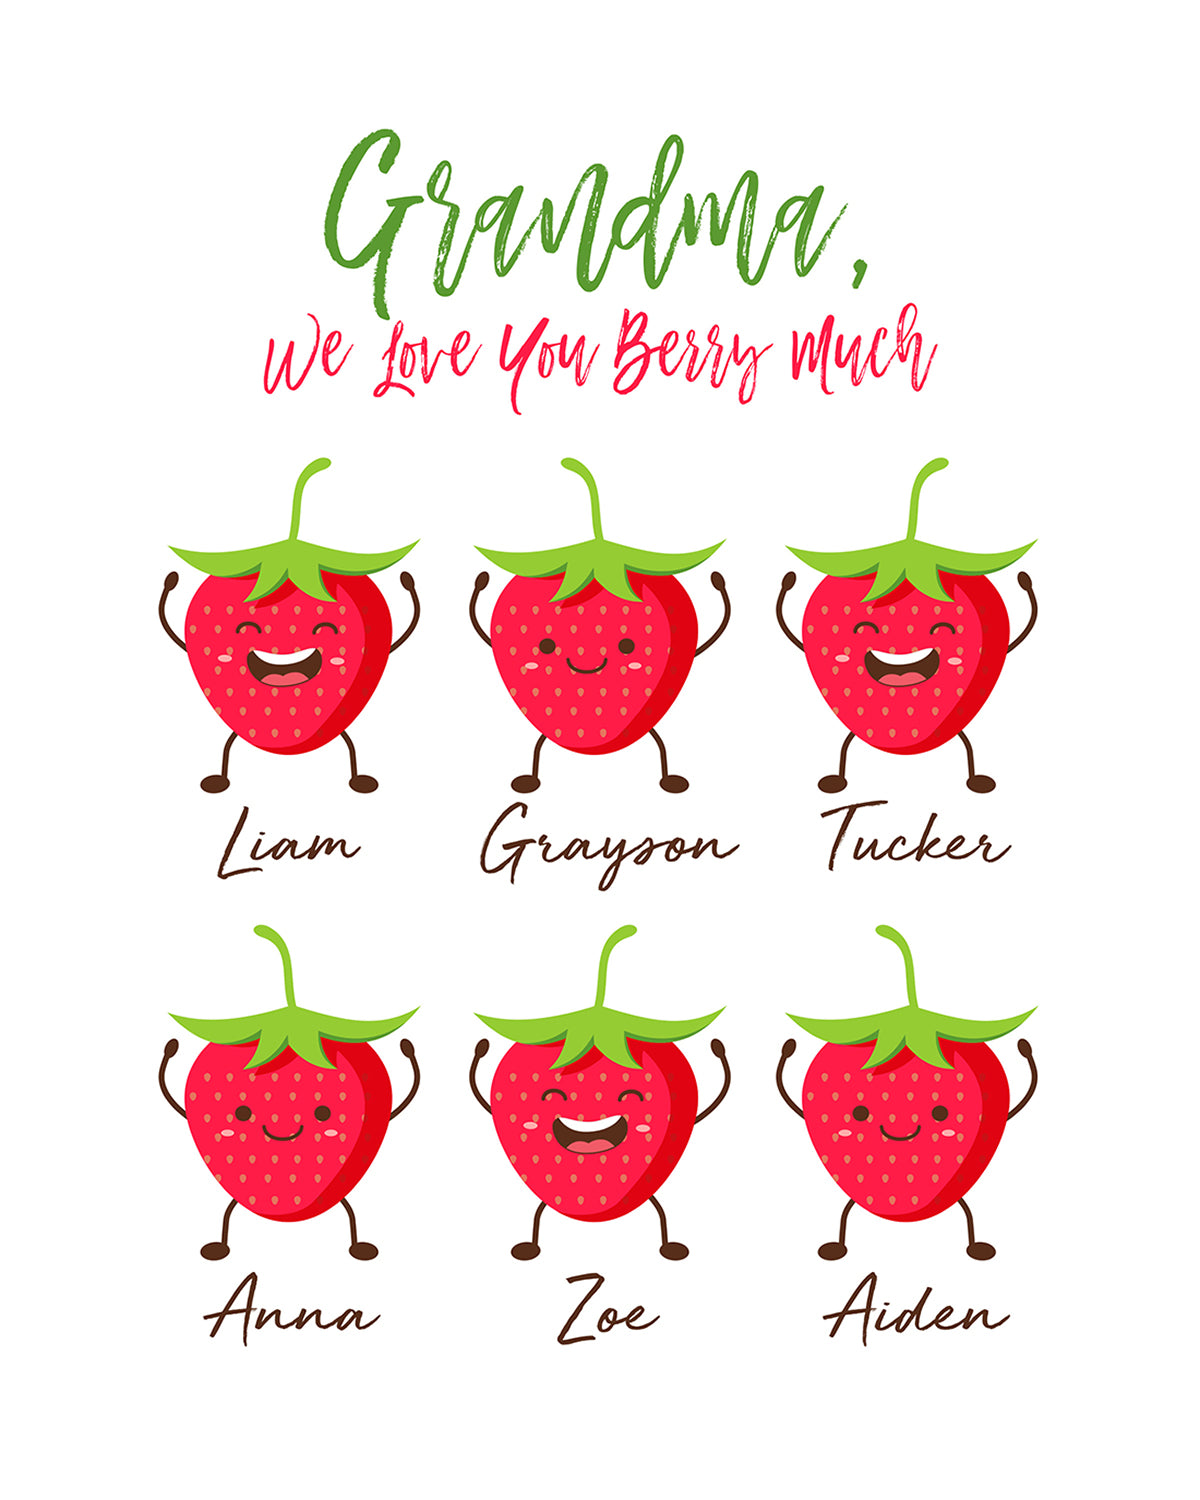 Grandma, We Love You Berry Much - Customizable Wall Decor Art - Print, Poster & Canvas Sizes - Perfect Mother's day gift for grandmothers